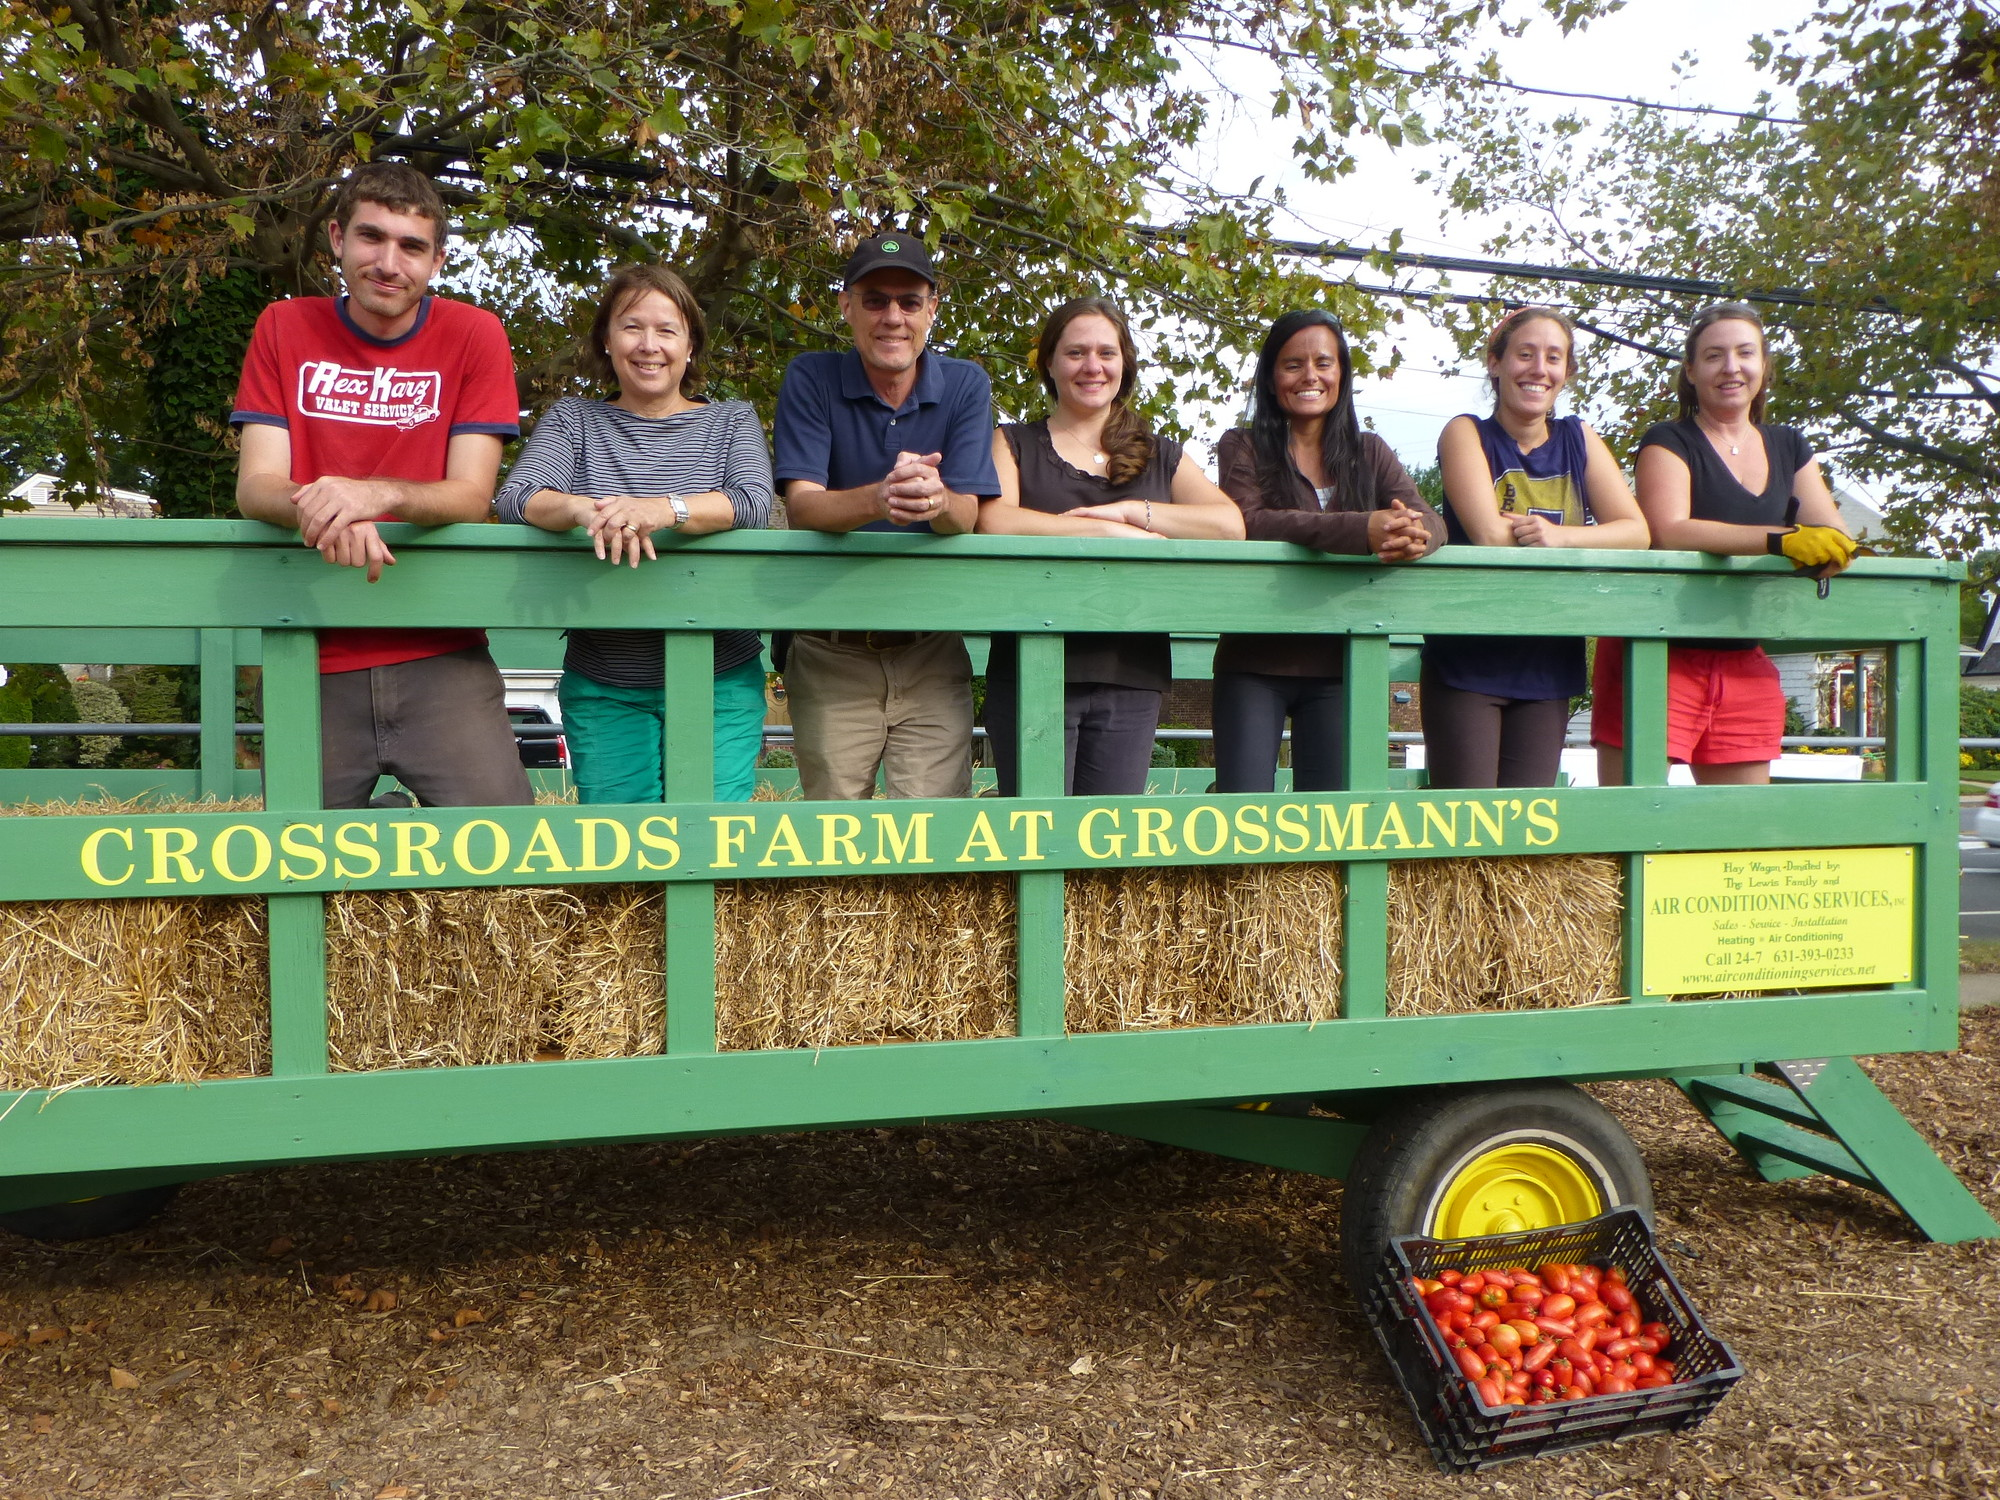 Crossroads staff, including Education Director Leonore Russell, second from left, Nassau Land Trust Treasurer Rick White, farm Director Elizabeth Schaefer, staff employee Stephanie, farm Director Meaghan Corcoran, far right, and volunteers in their brand new hayride.